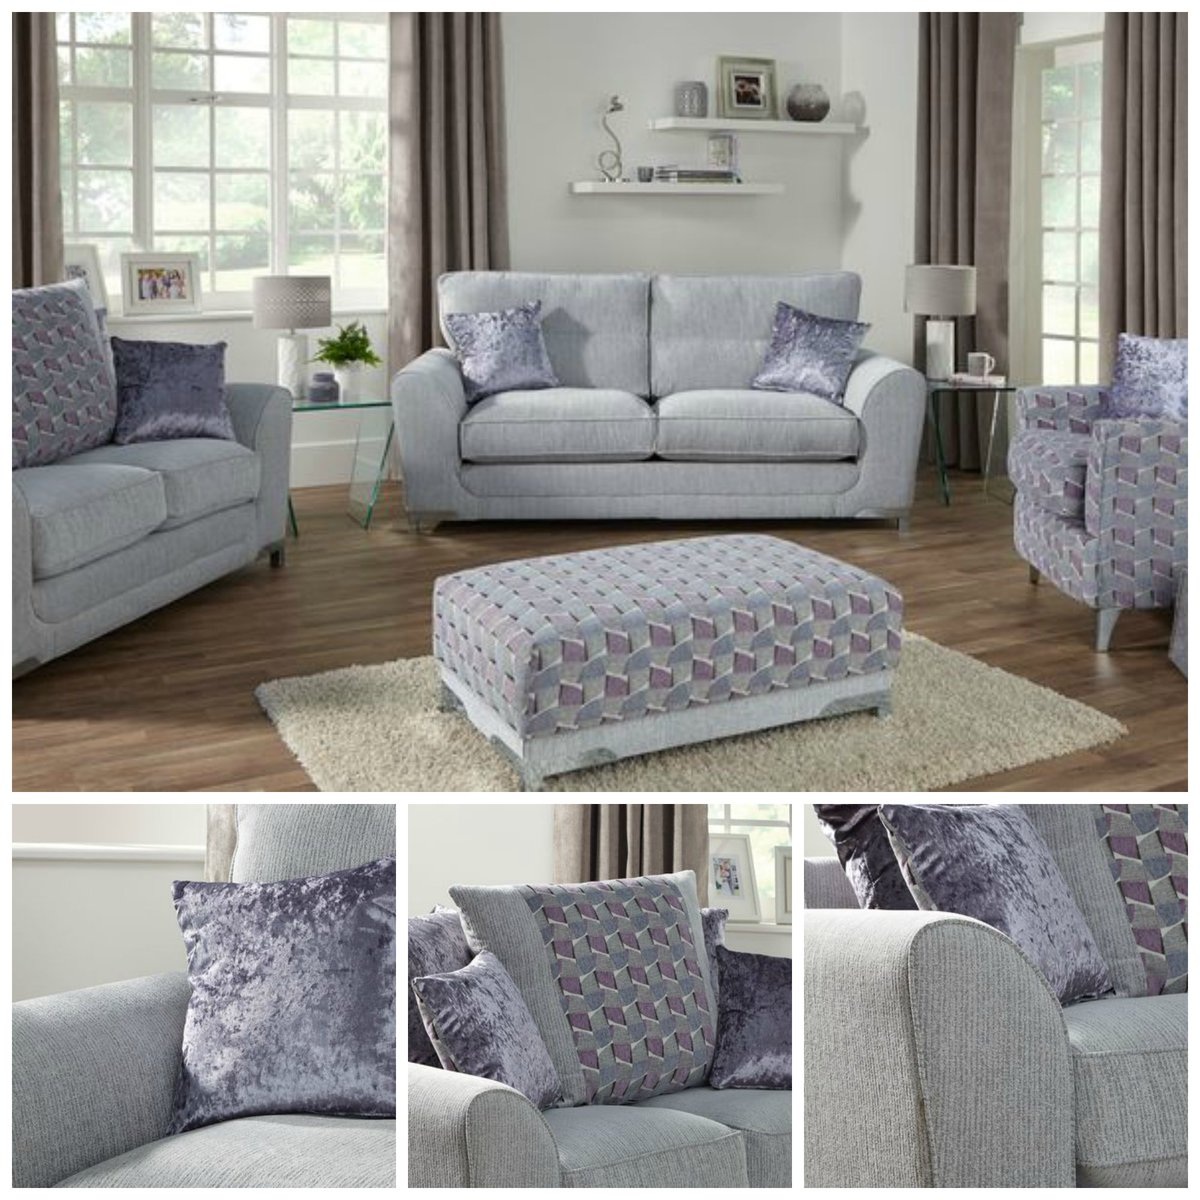 Scs Sofas On Twitter Pair The Astrid Sofa Collection With Curvo Lamp Table To Give Your Living Room A Touch Of Elegance Https T Co N4ad5eavxl